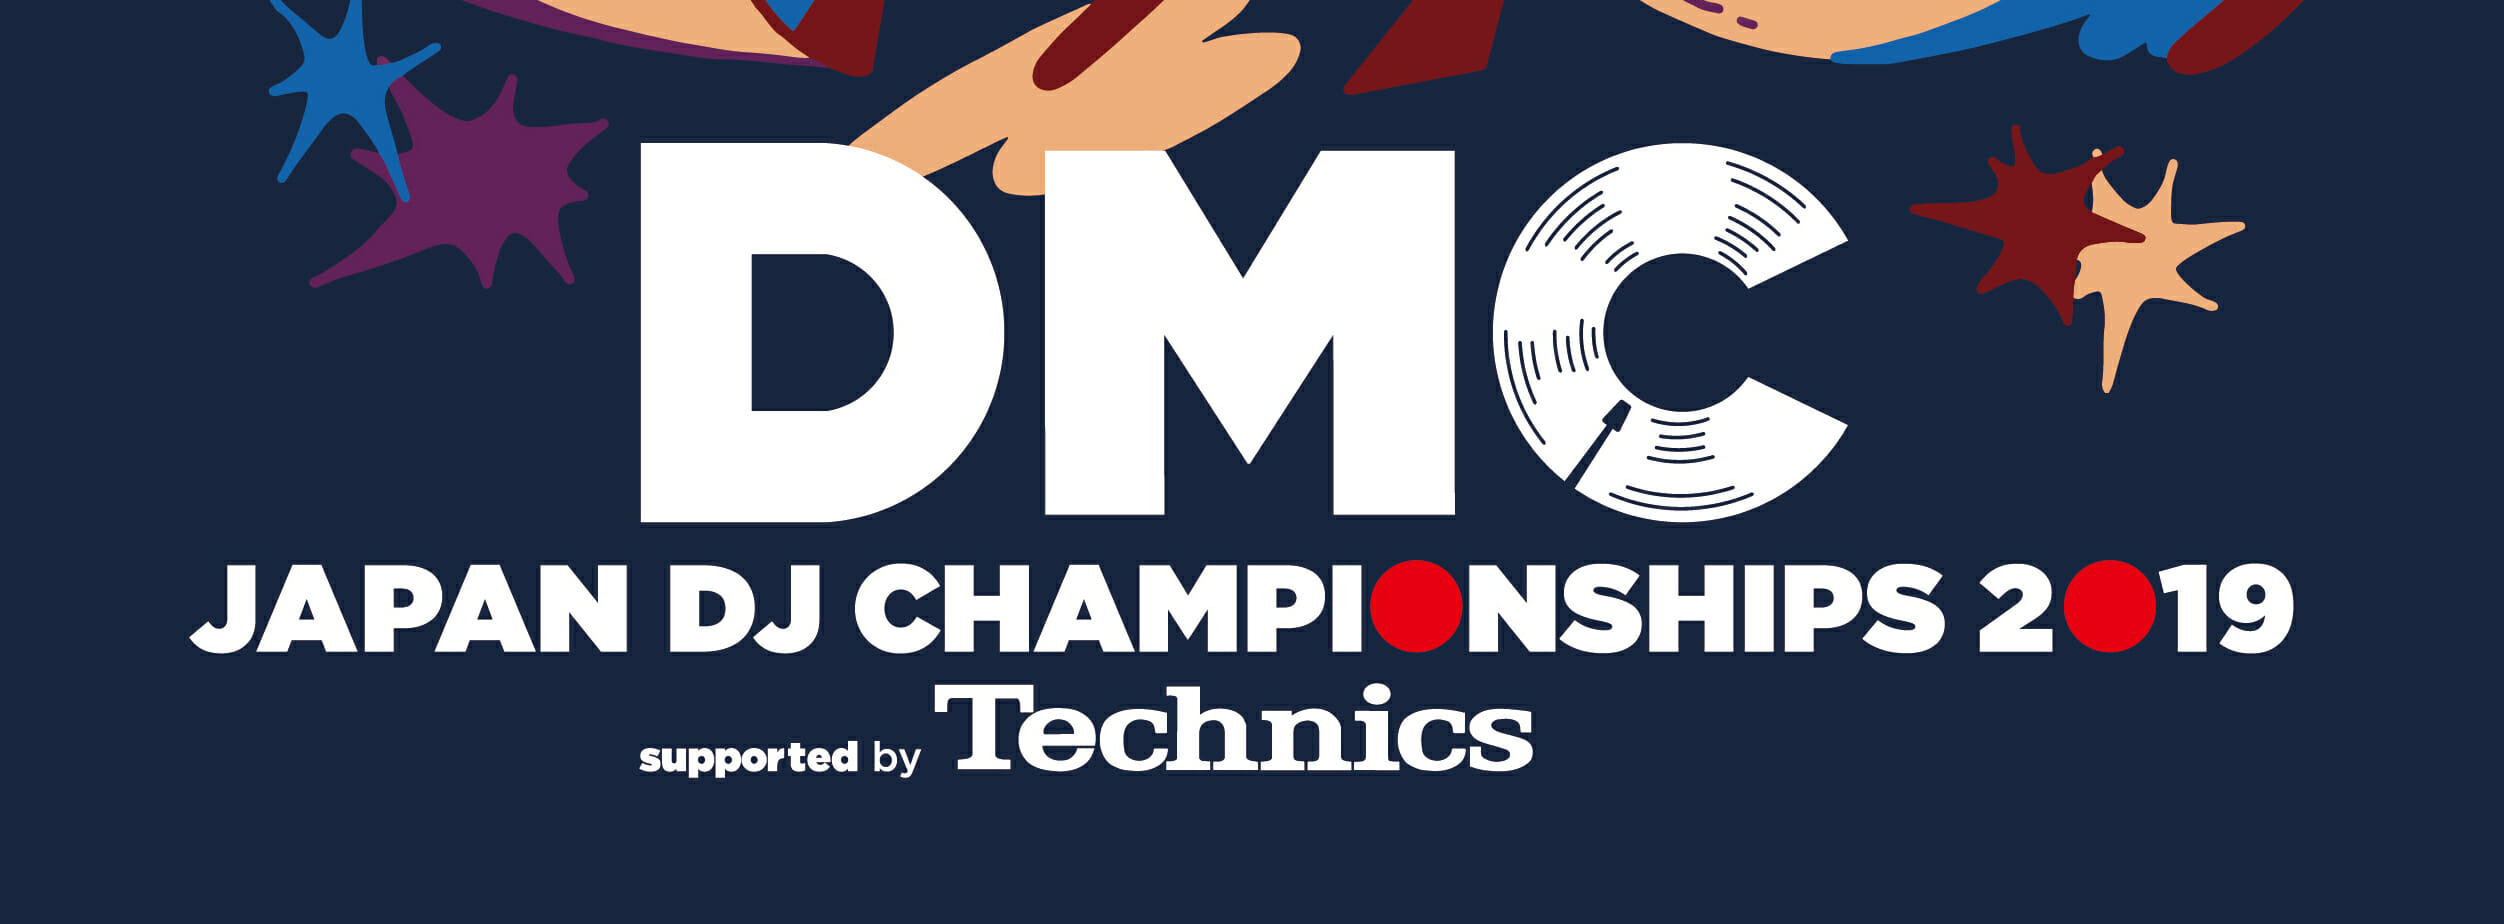 DMC JAPAN DJ CHAMPIONSHIPS 2019 supported by Technics開催!